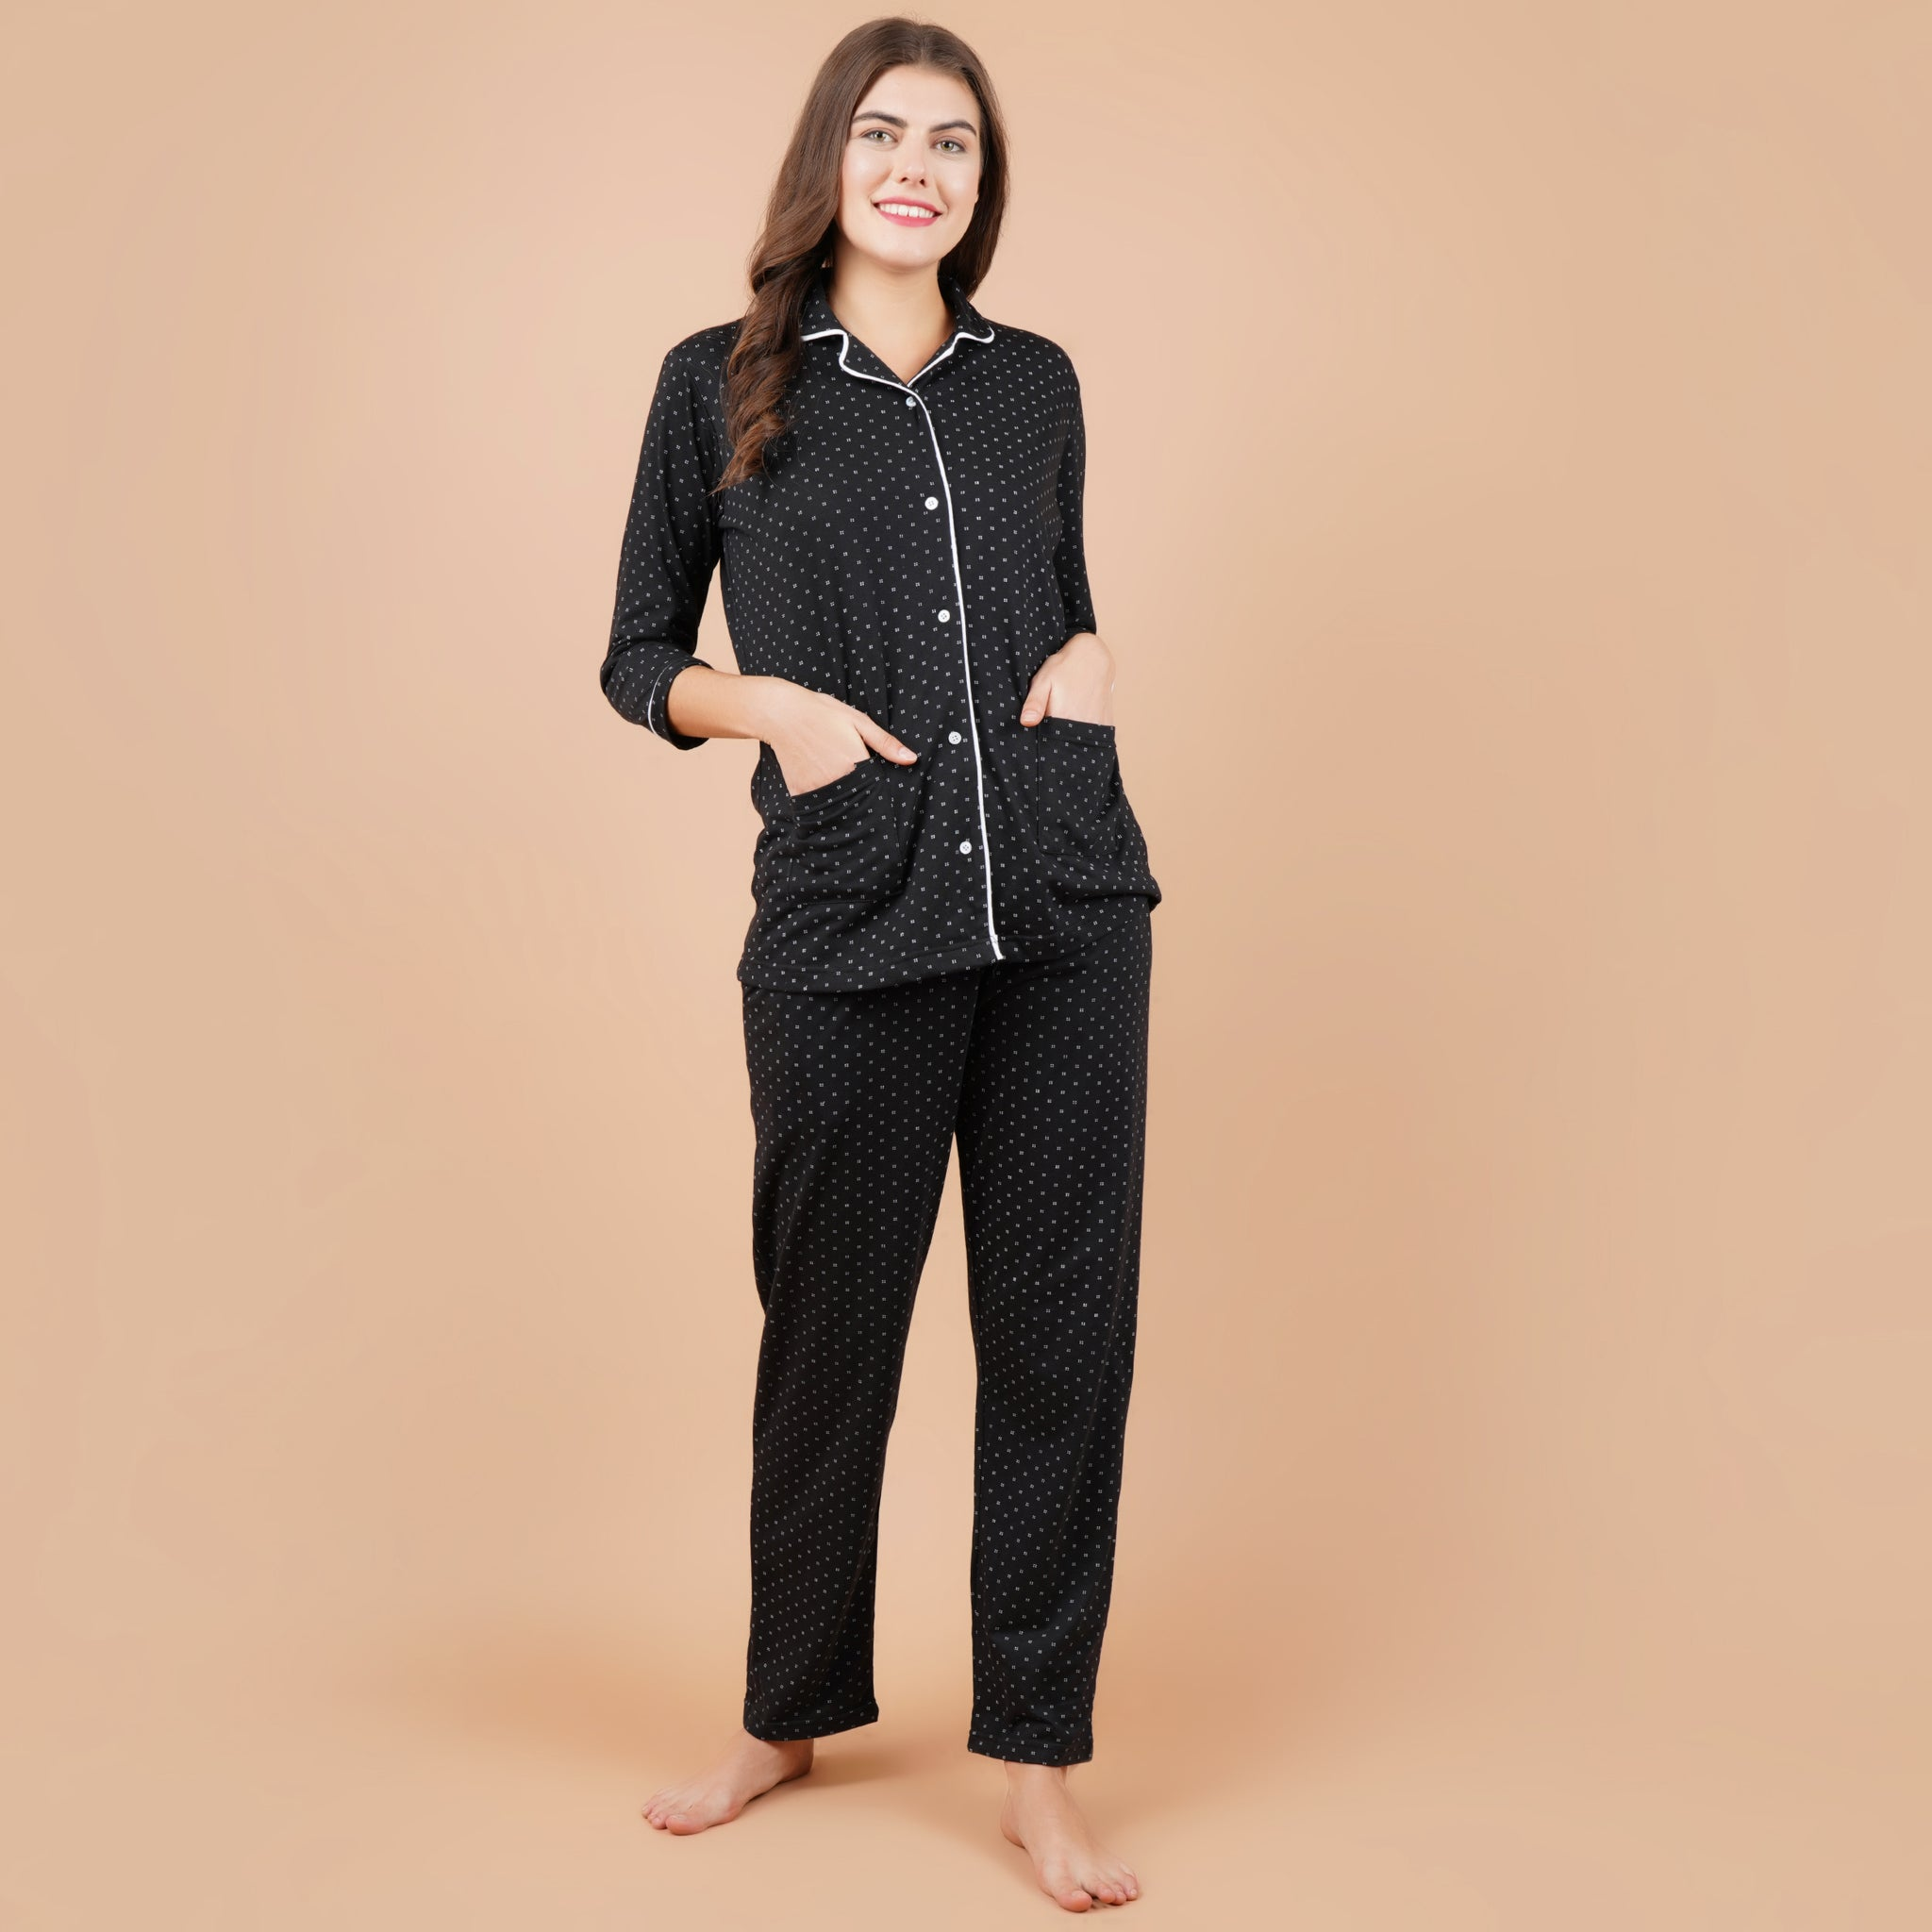 Ficuster Women Black Printed 3/4th Sleeve Night Suit (Double Pockets Top Wear)